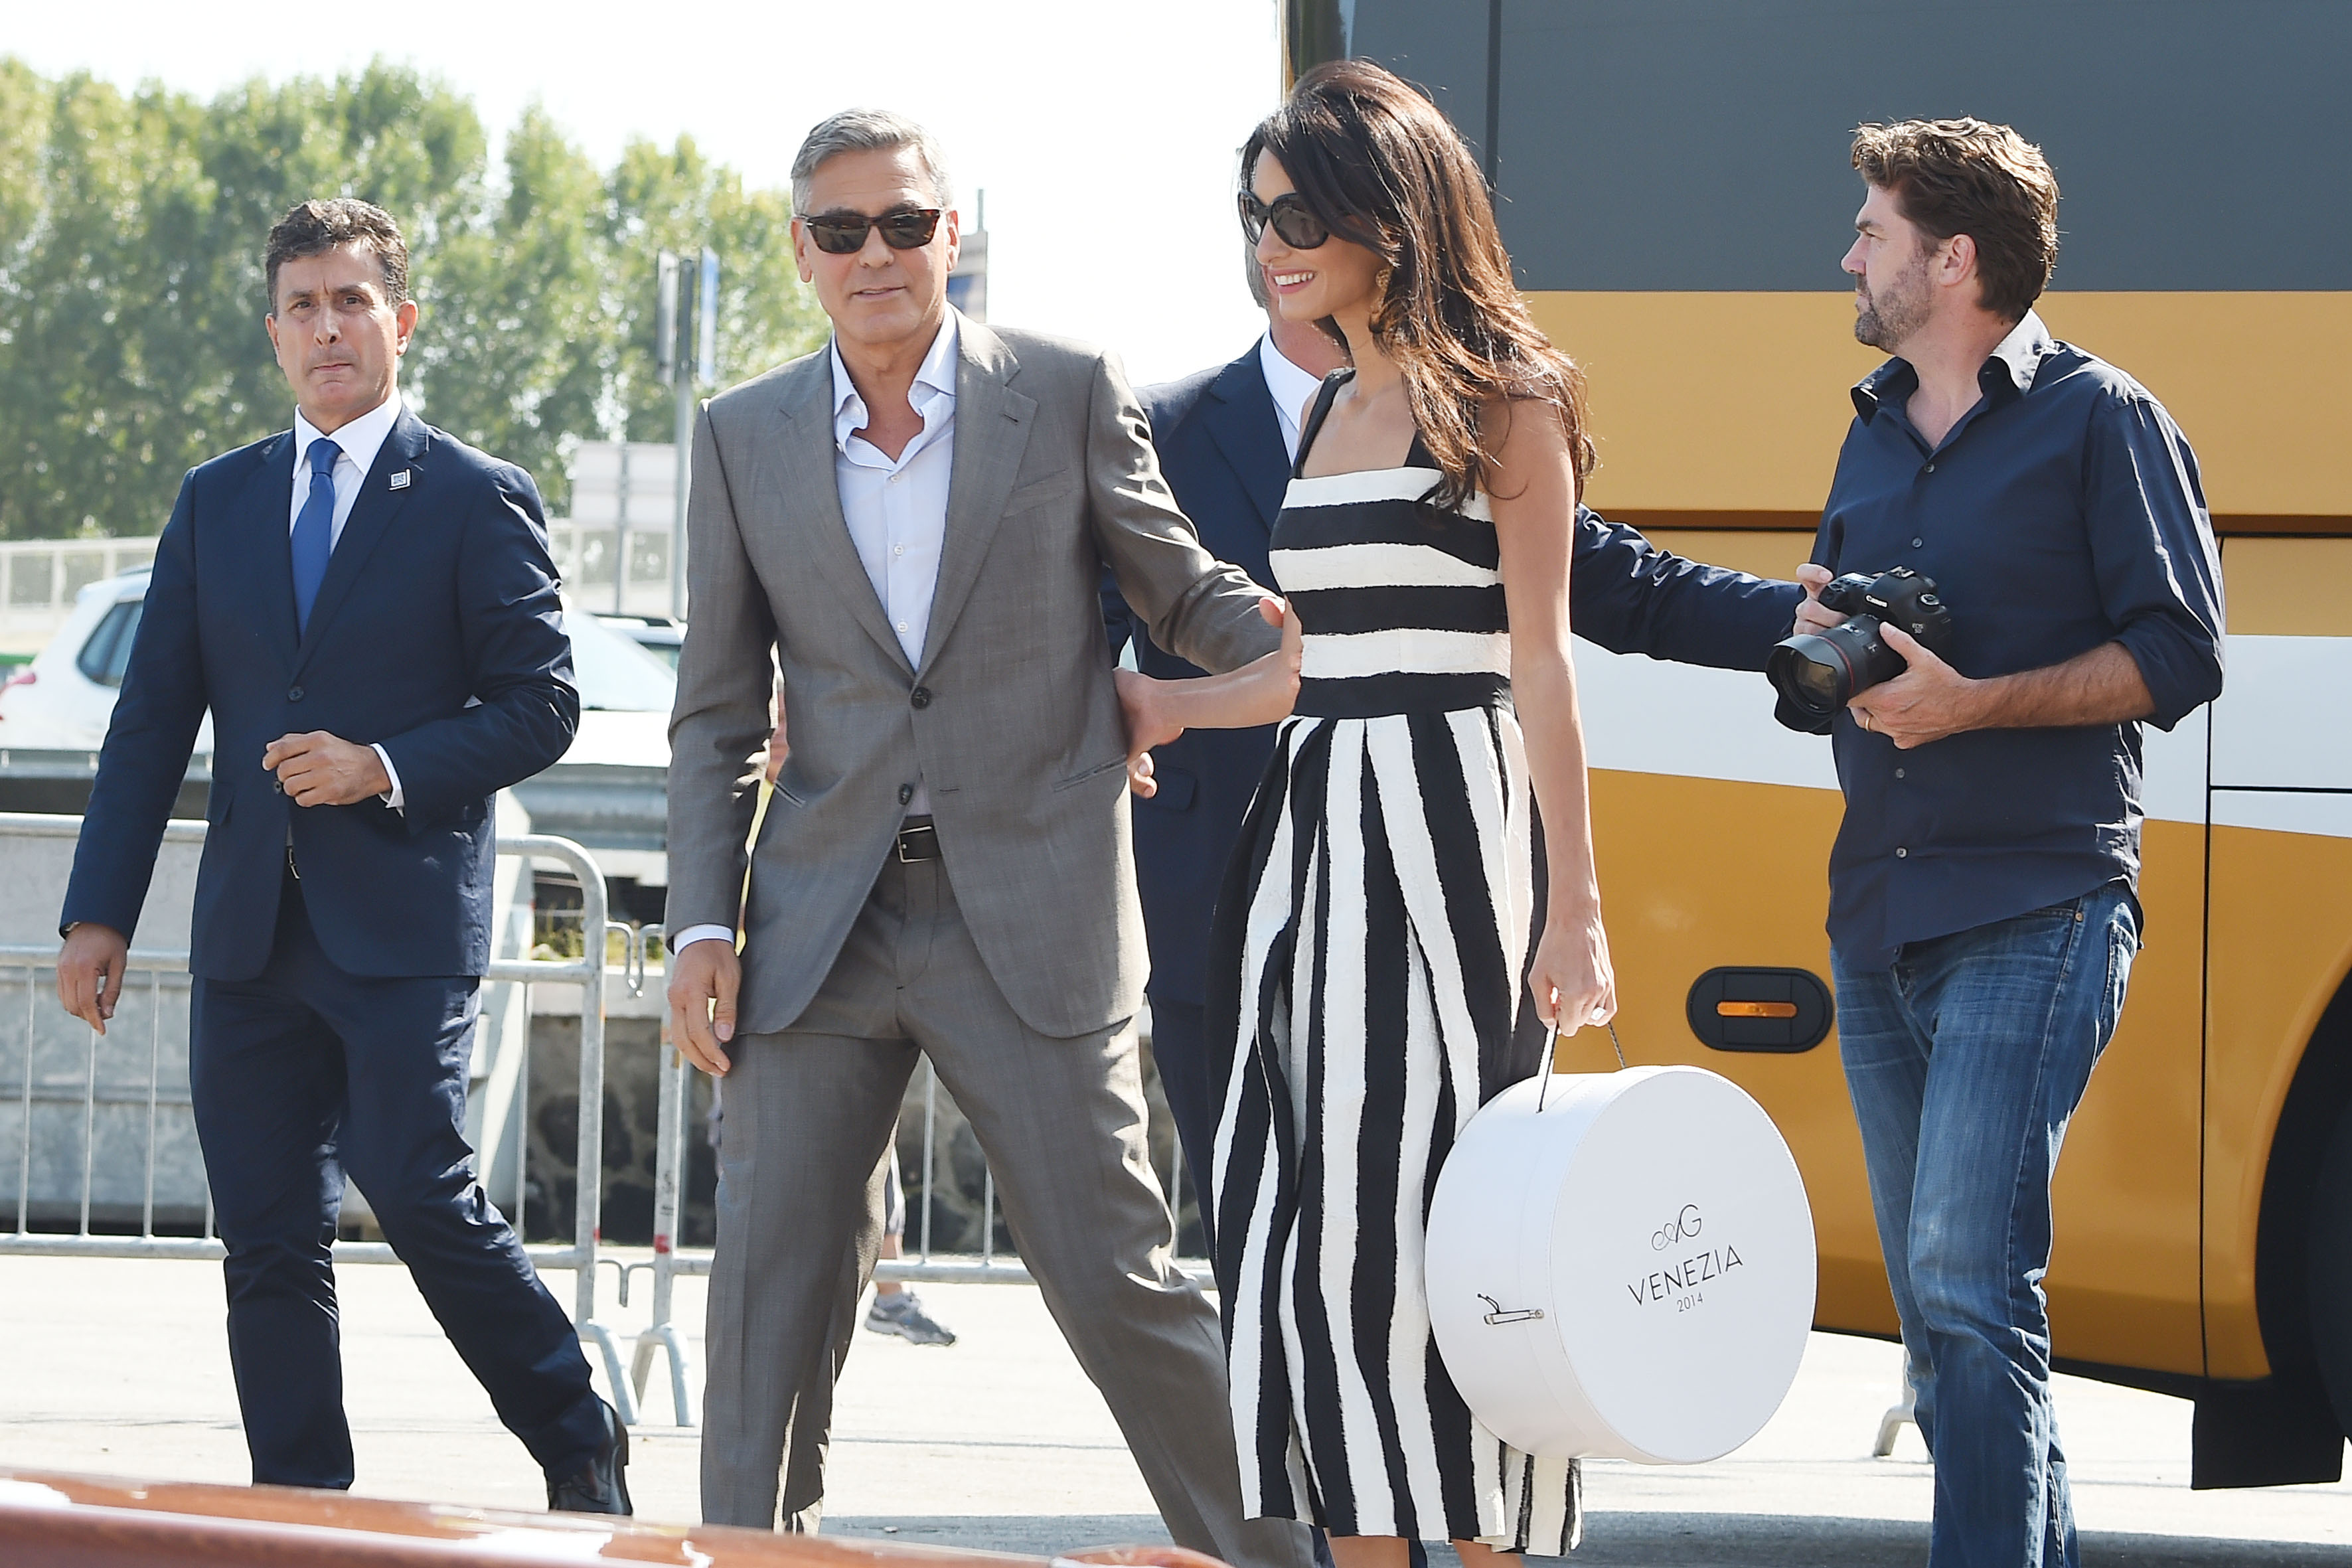 George Clooney and Amal Alamuddin are dazzling as they arrive in Venice